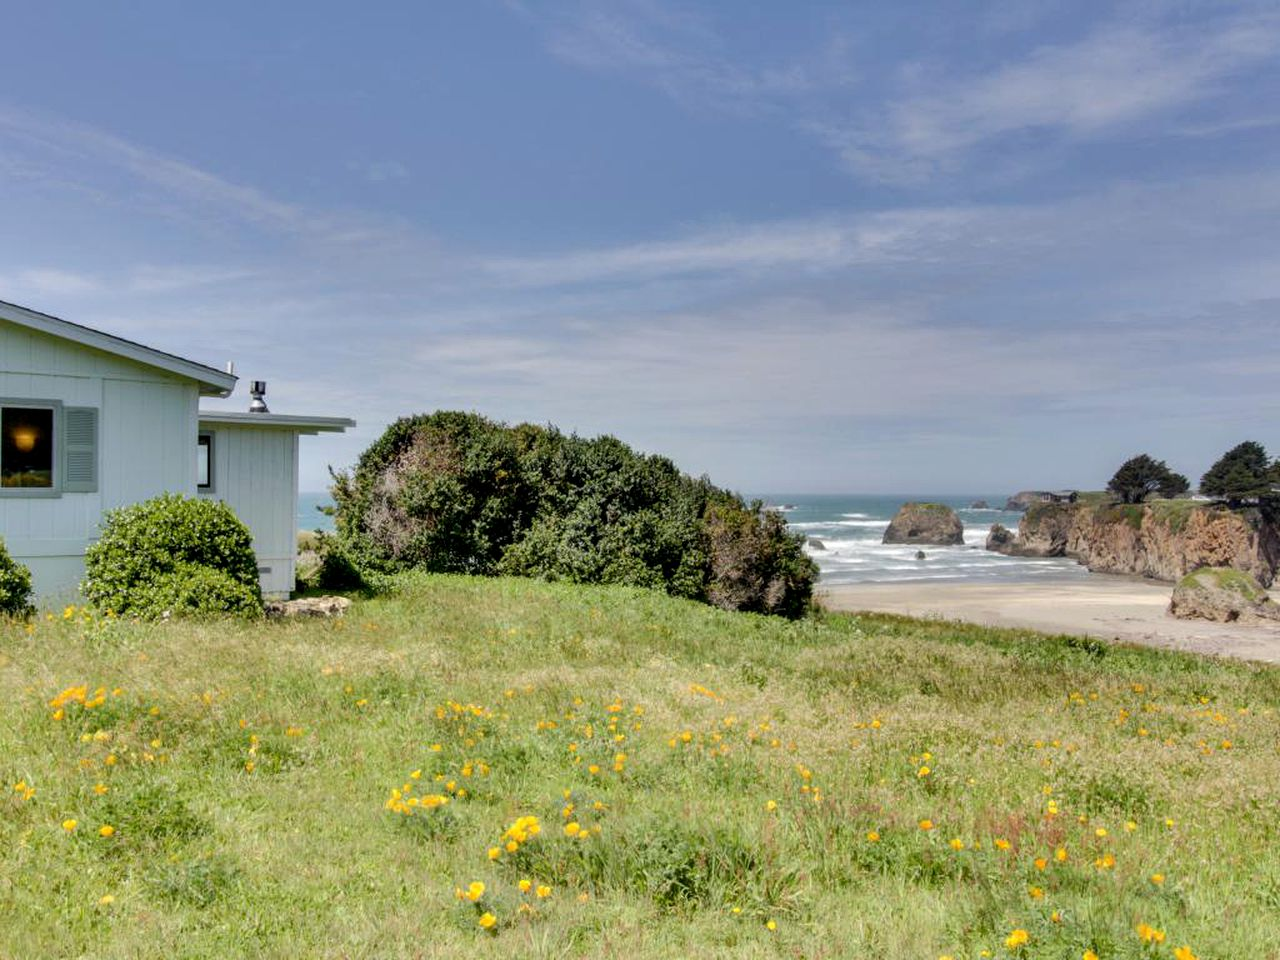 Beach Houses (Fort Bragg, California, United States)